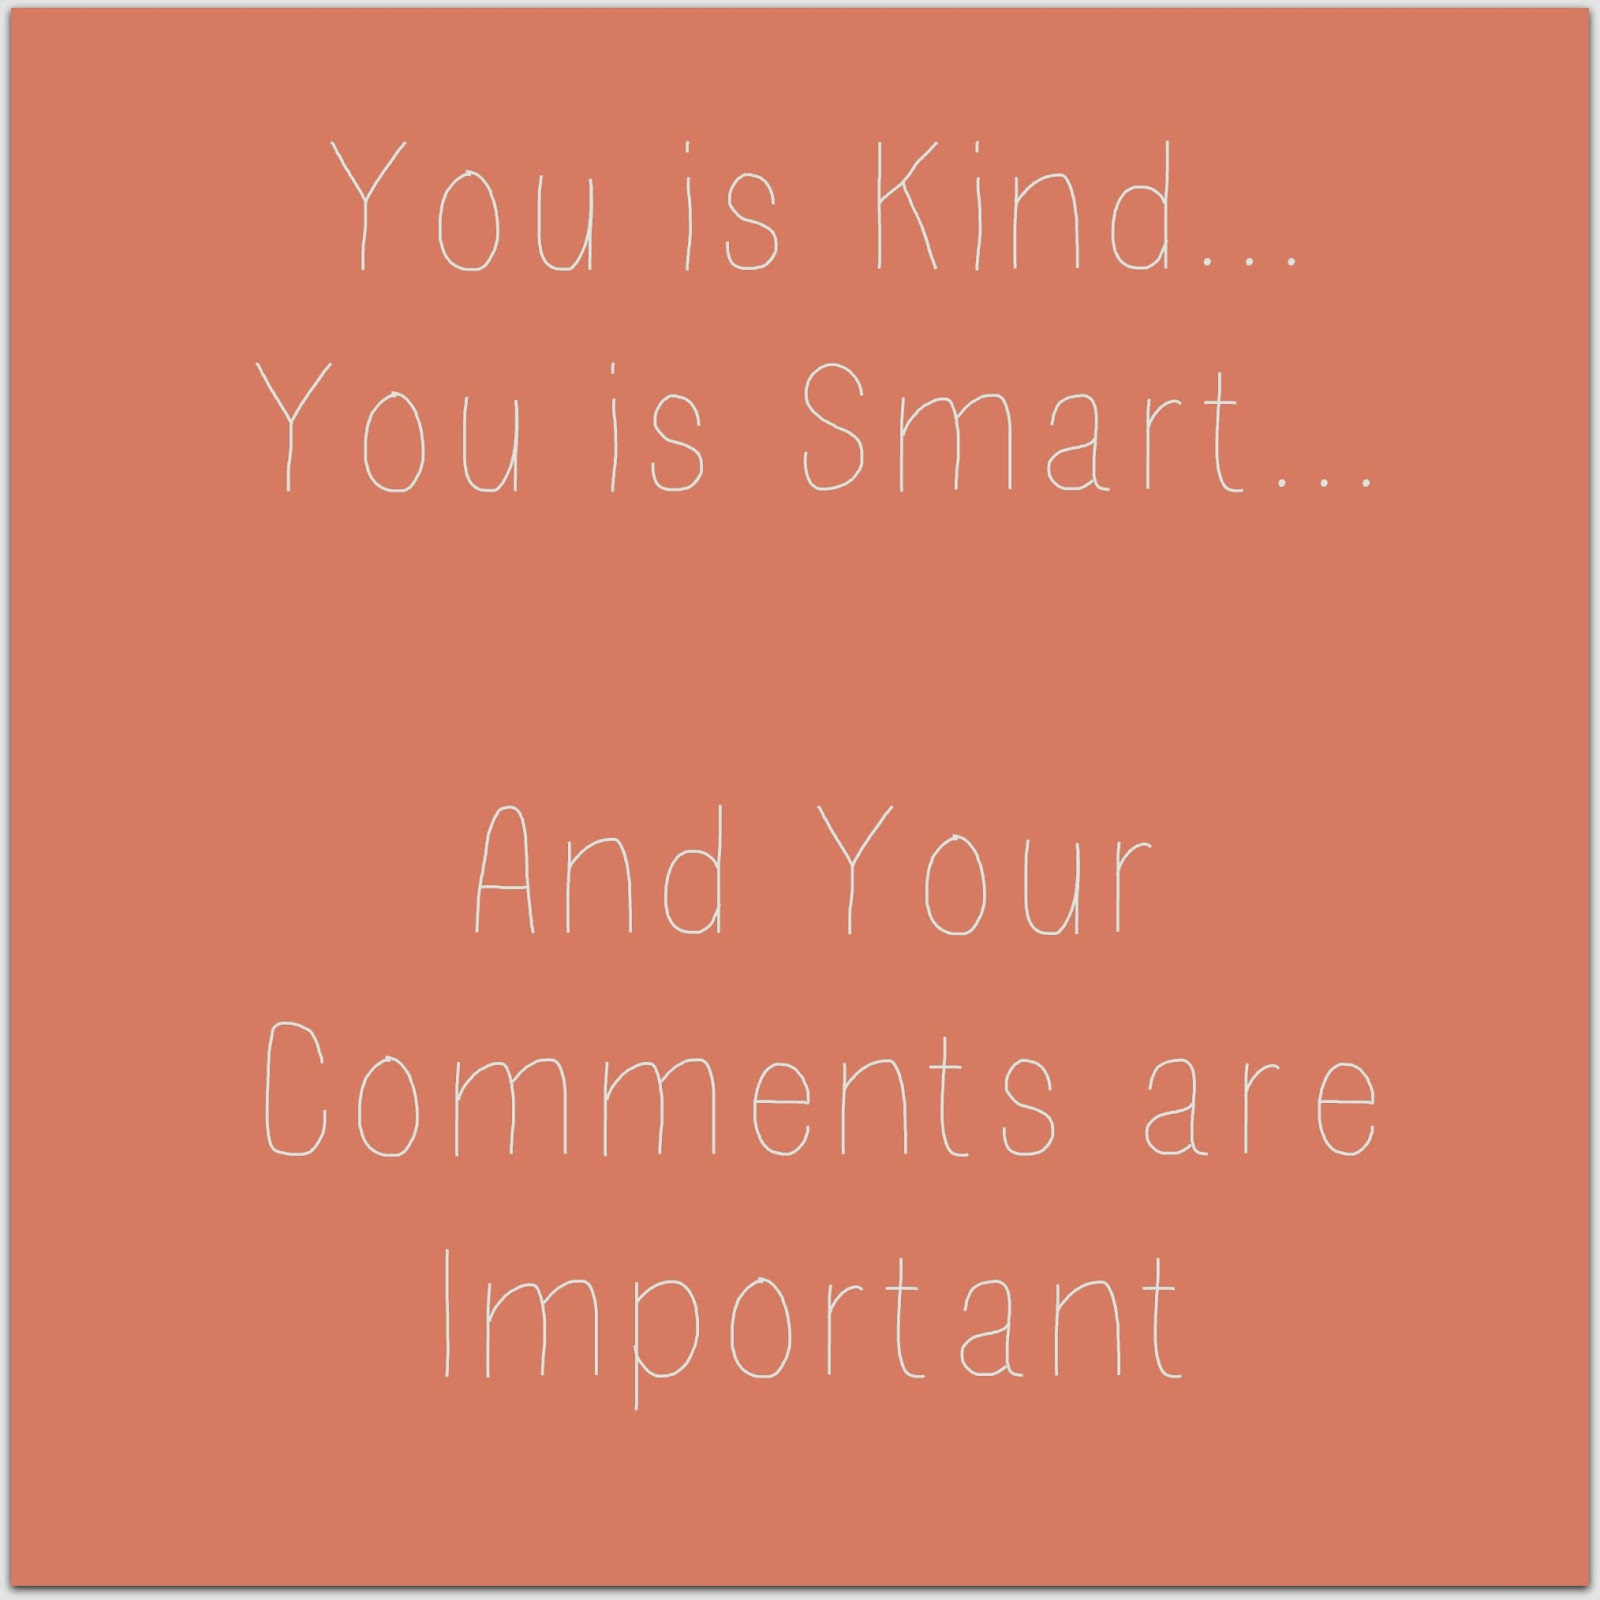 You is Kind, You is Smart and Your Comments are Important...